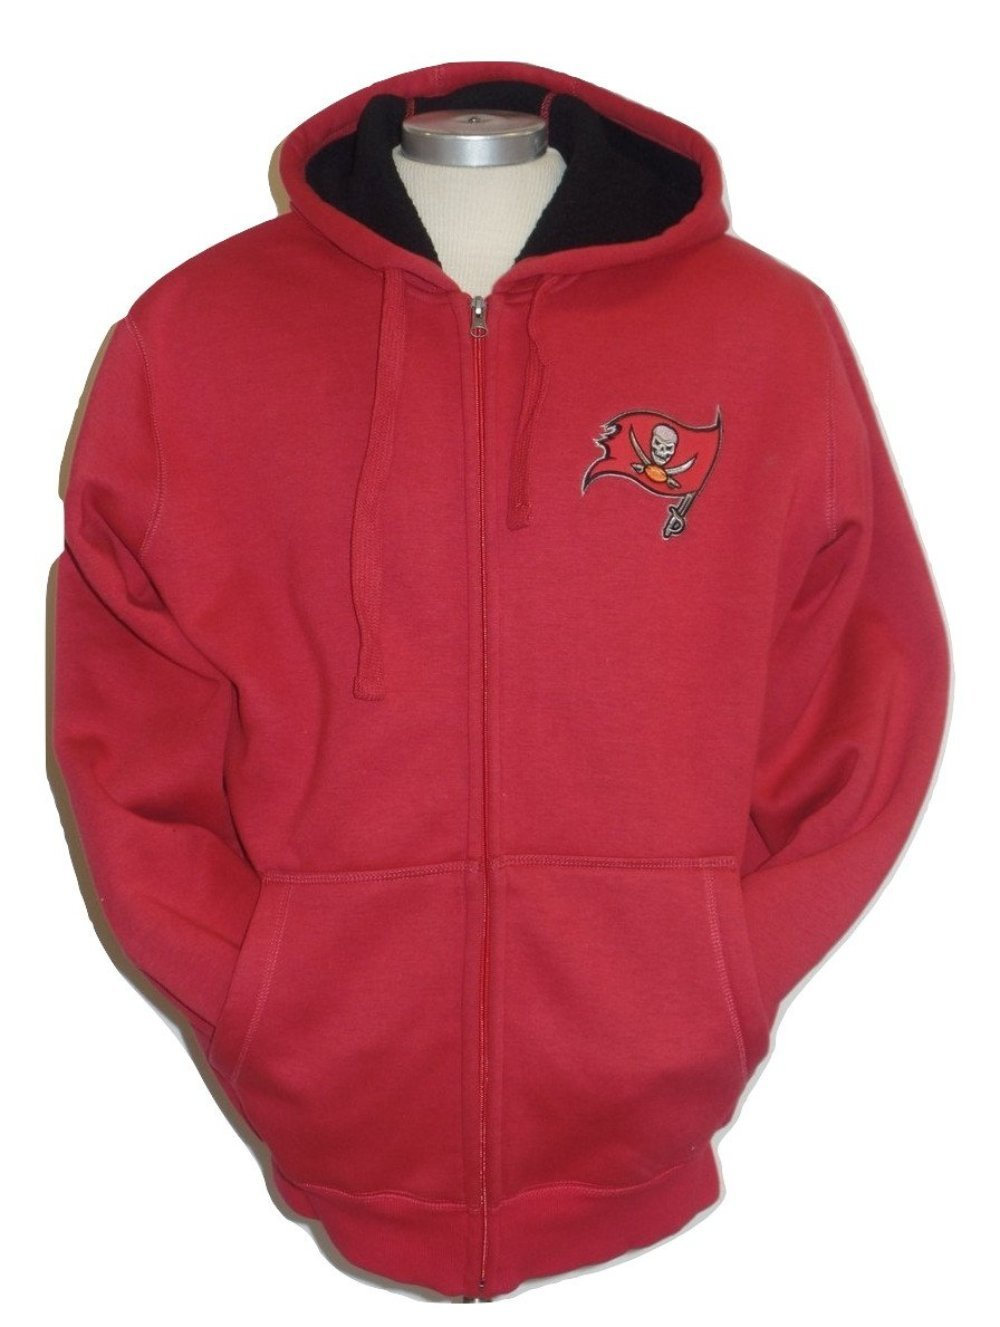 Tampa Bay Buccaneers Men's Sherpa Fleece Hooded Jacket by G-III Sports